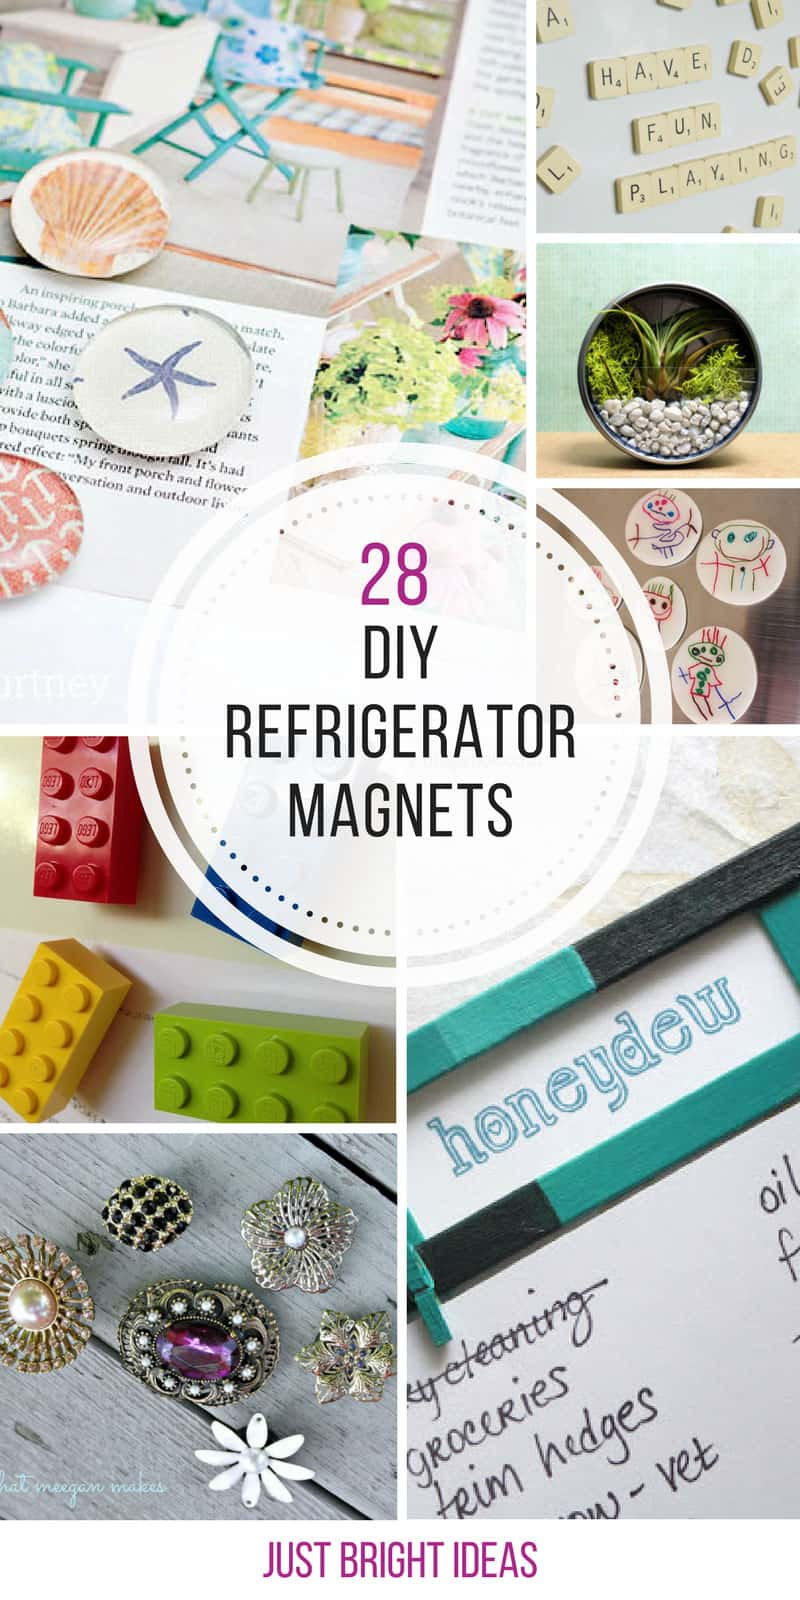 Loving these DIY refrigerator magnets! Thanks for sharing!